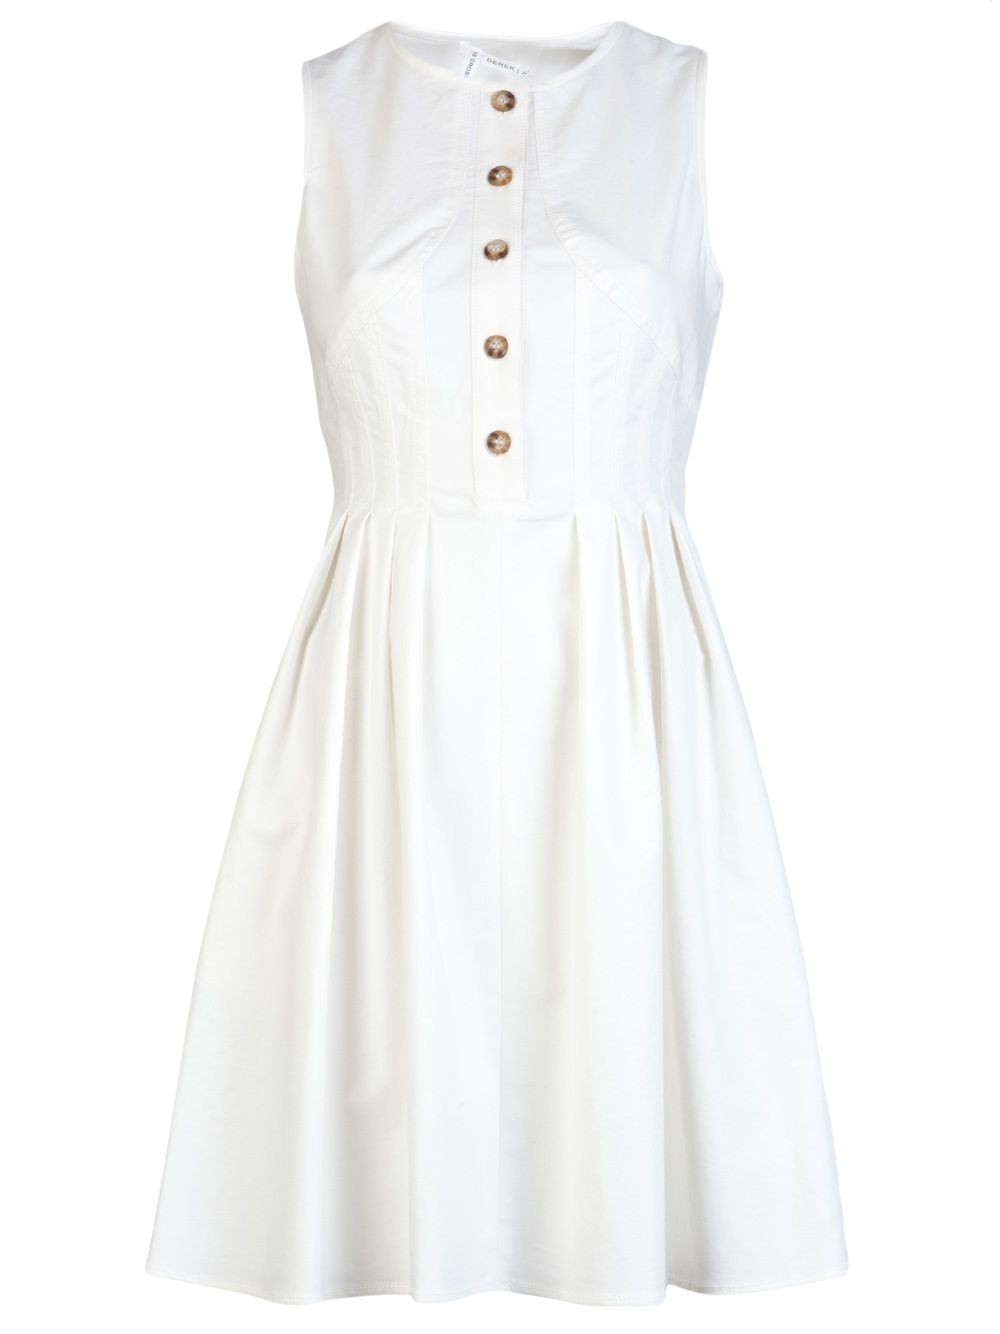 10 Crosby by Derek Lam Fit and Flare Dress